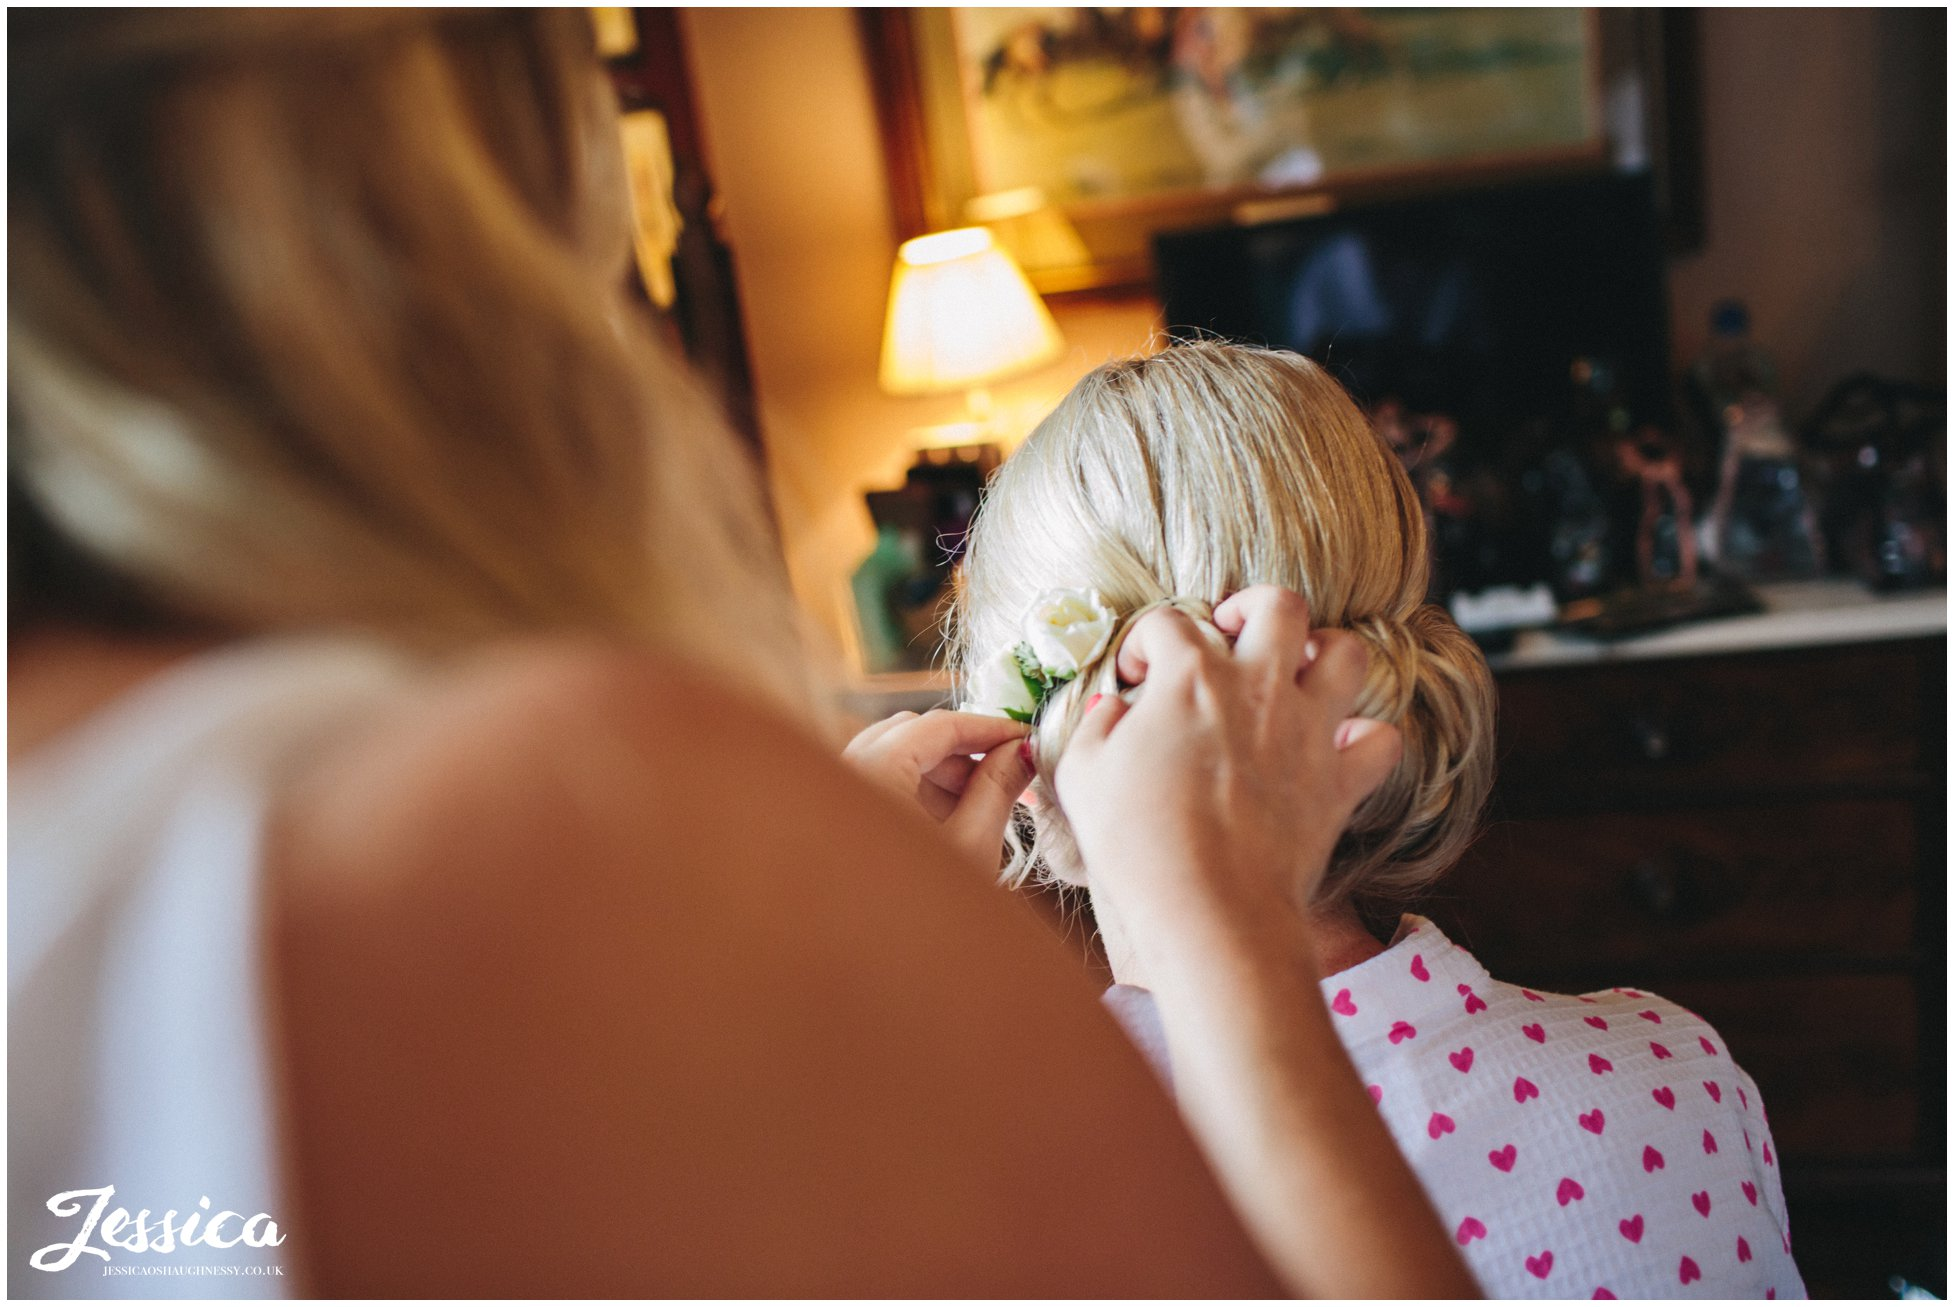 the bride getting her hair done on her wedding day